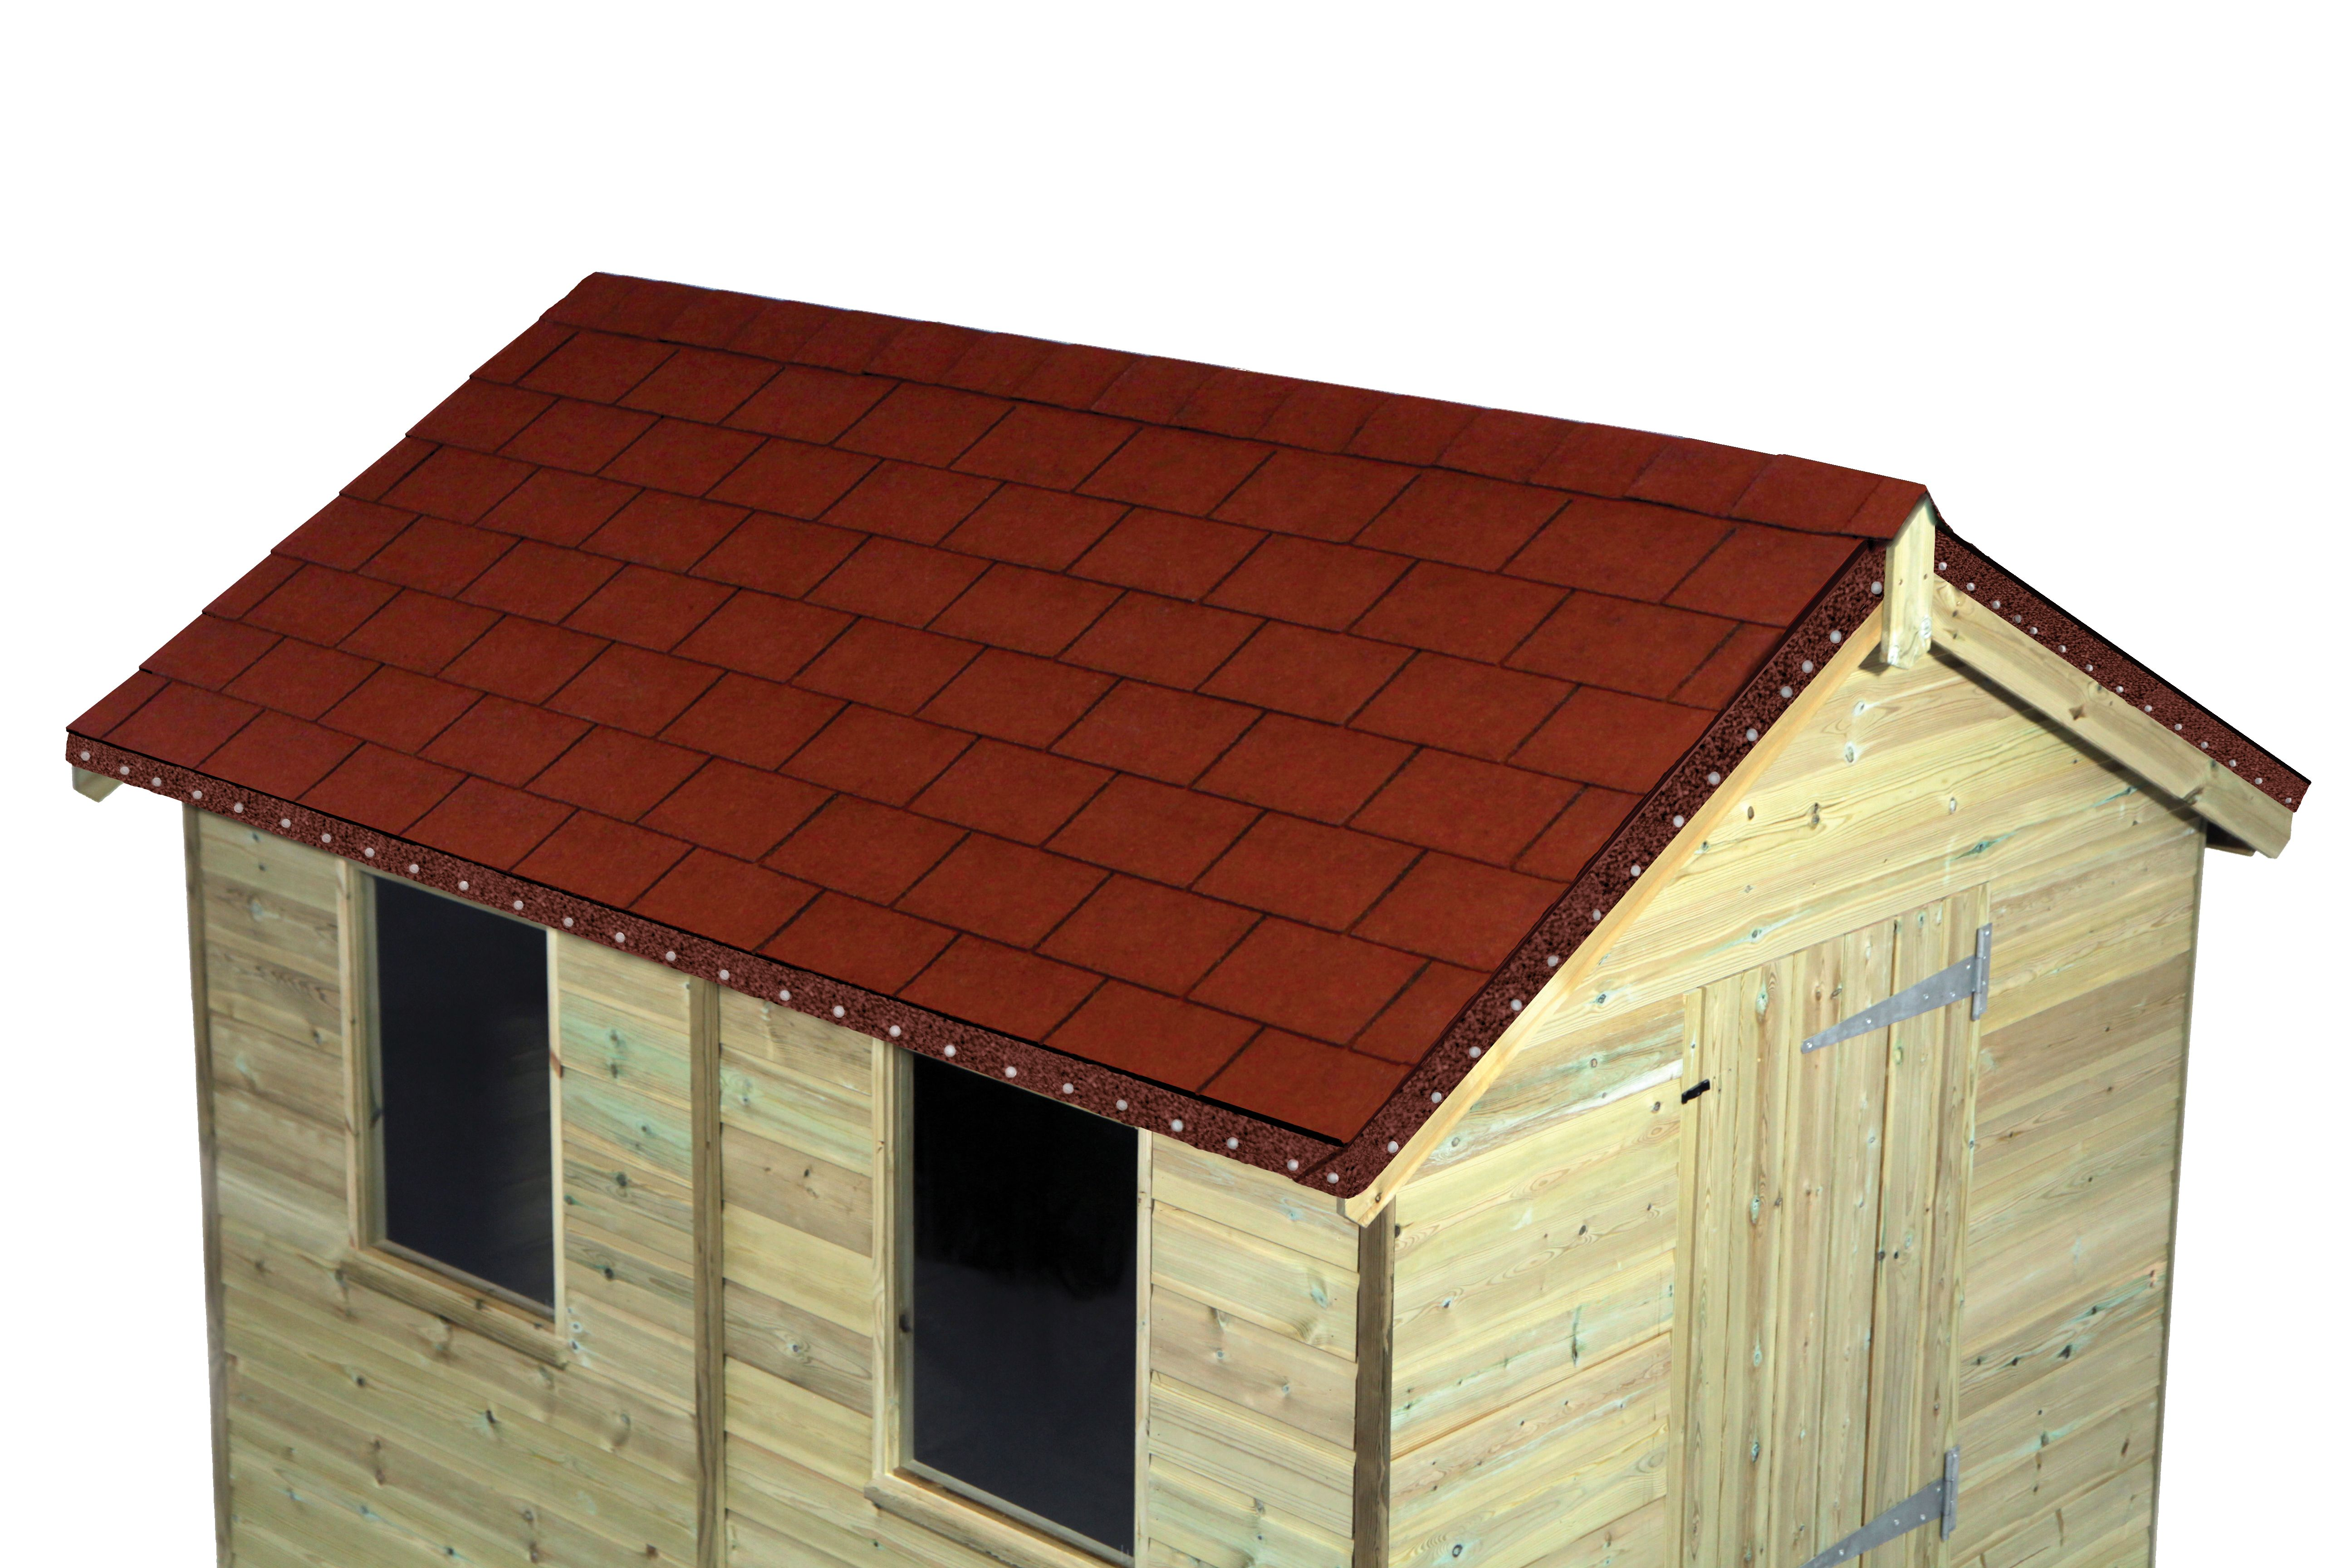 Wickes Red Roofing Shingles 2m2 Pack 14 | Wickes.co.uk